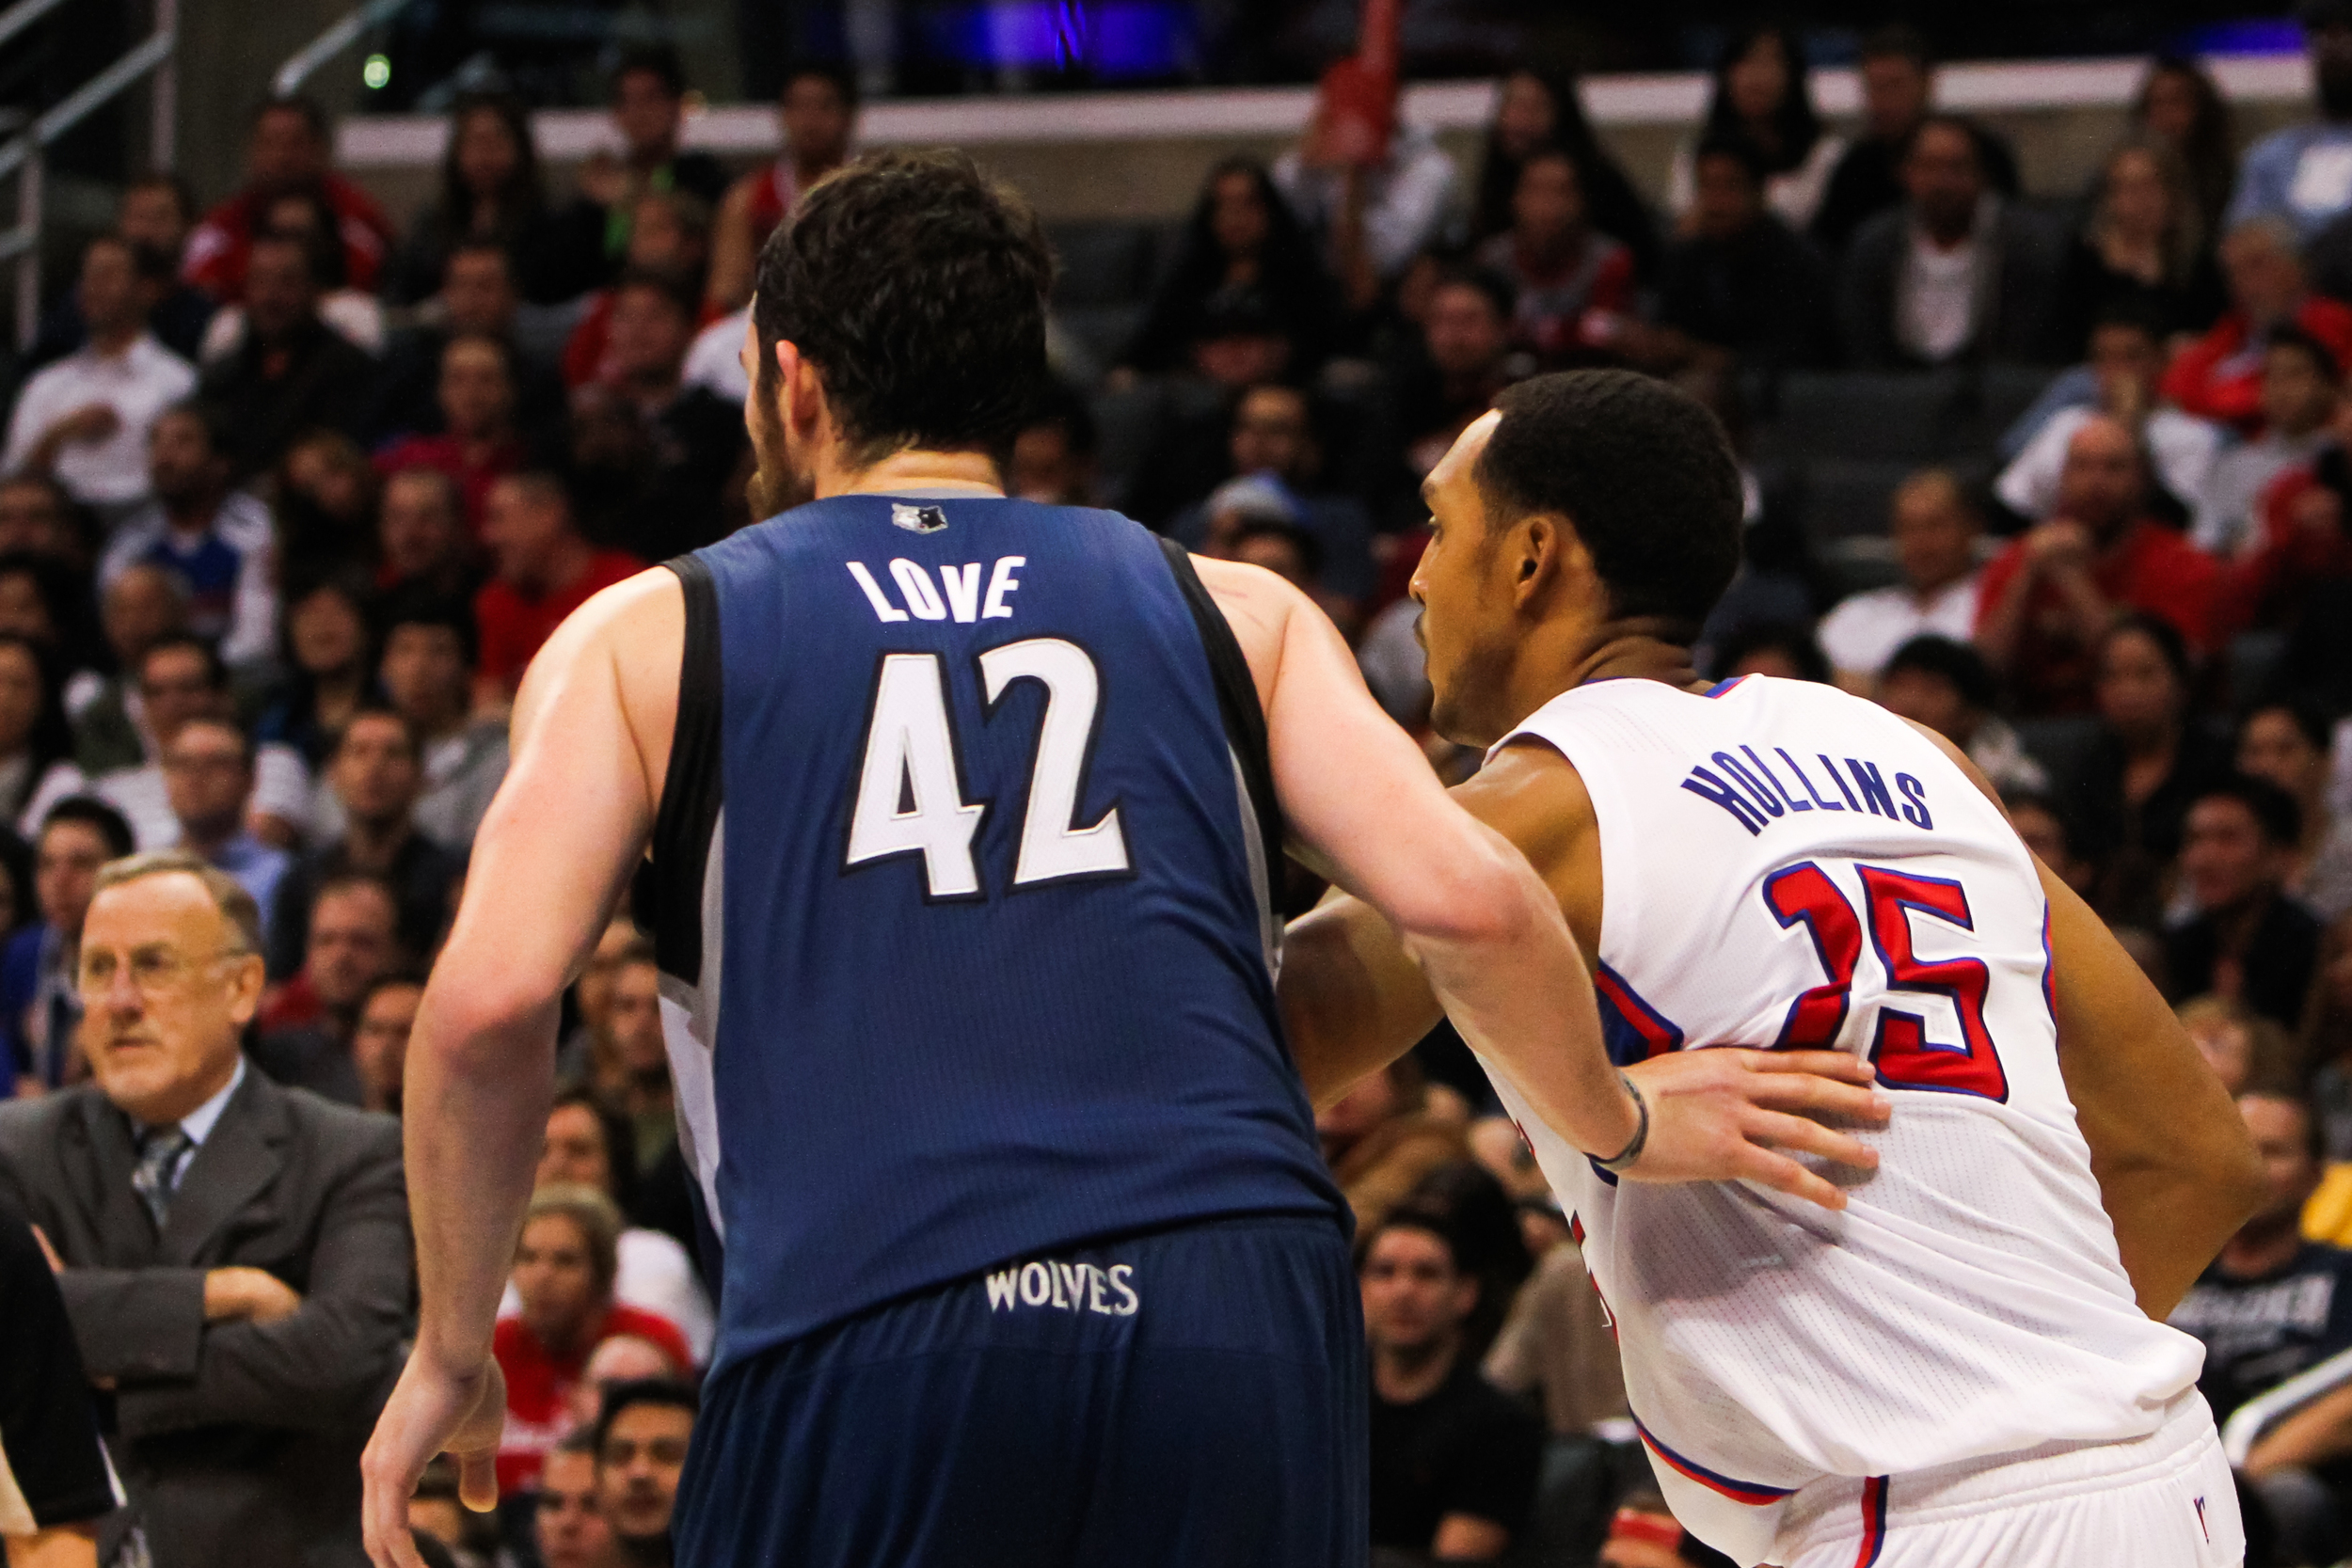 Photo by- Varon P. T-wolves-87.jpg